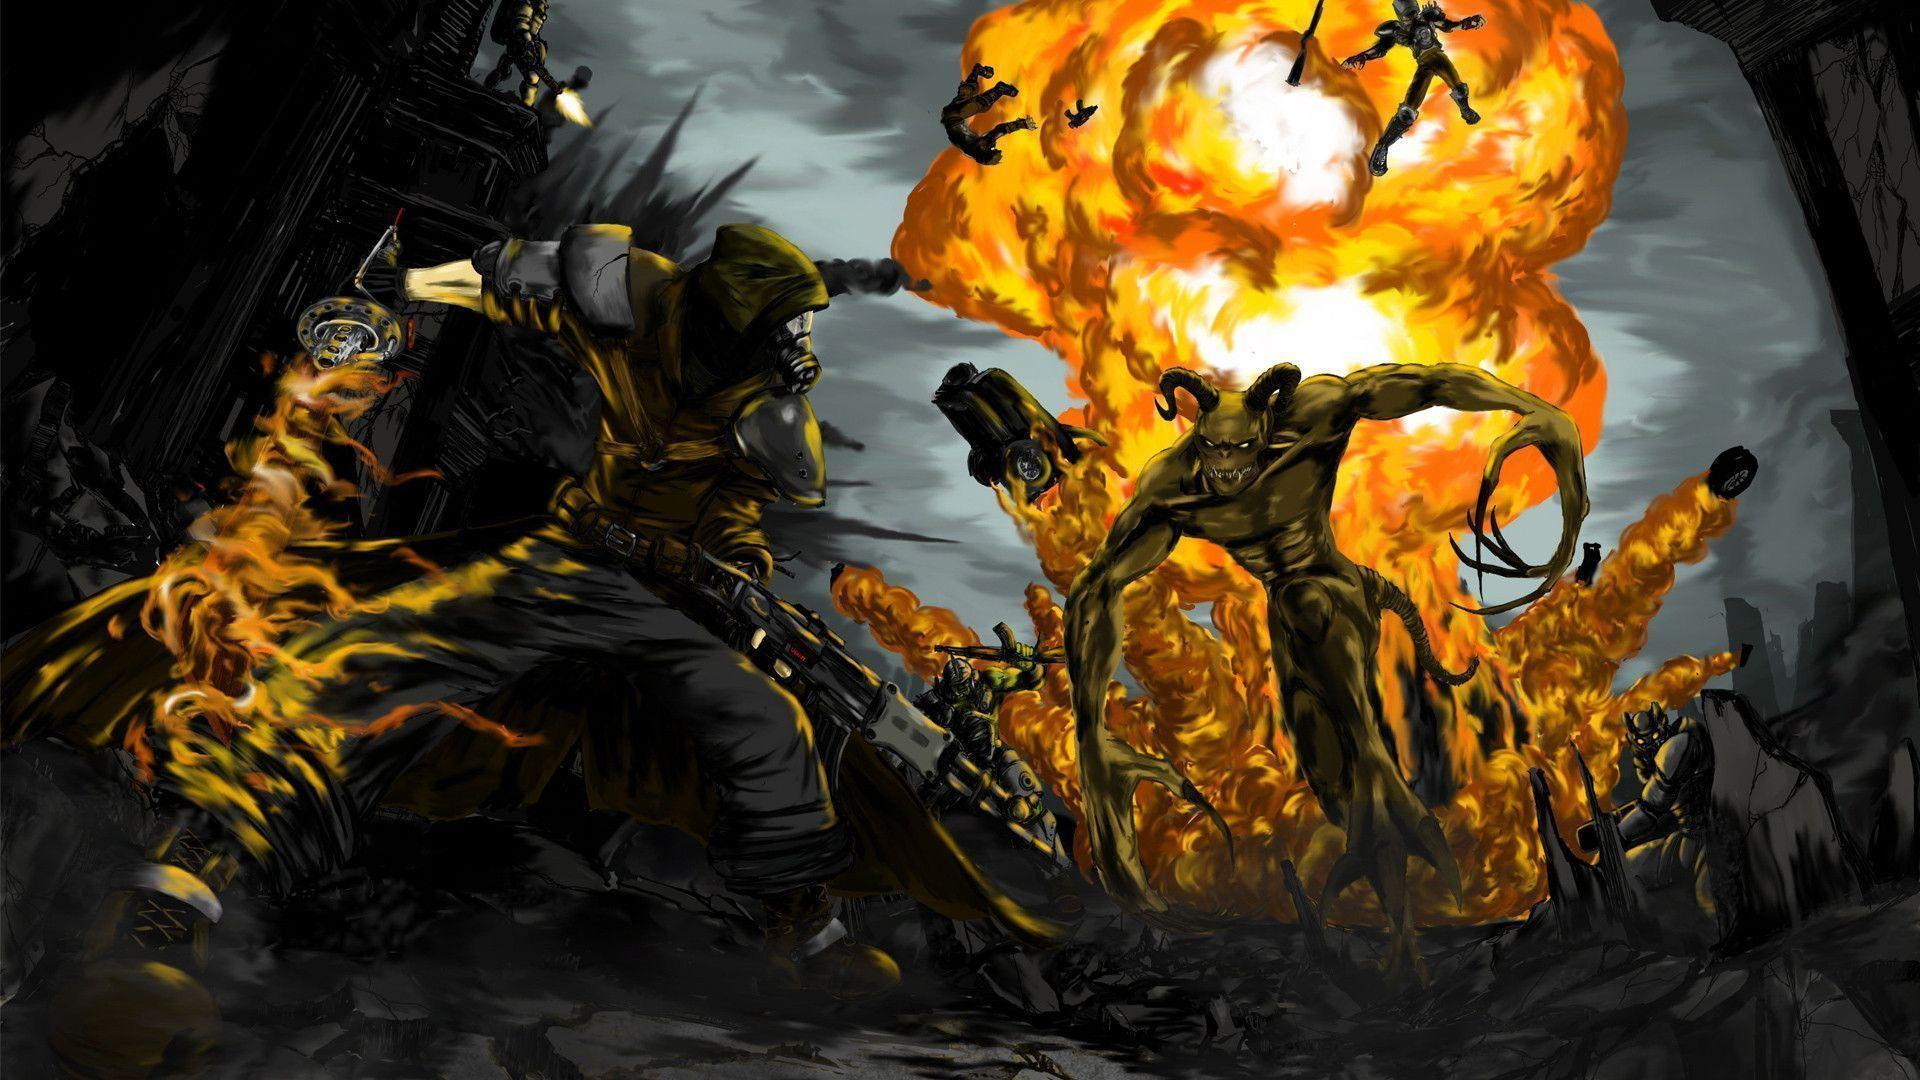 23 Fallout 3 Wallpapers | Fallout 3 Backgrounds